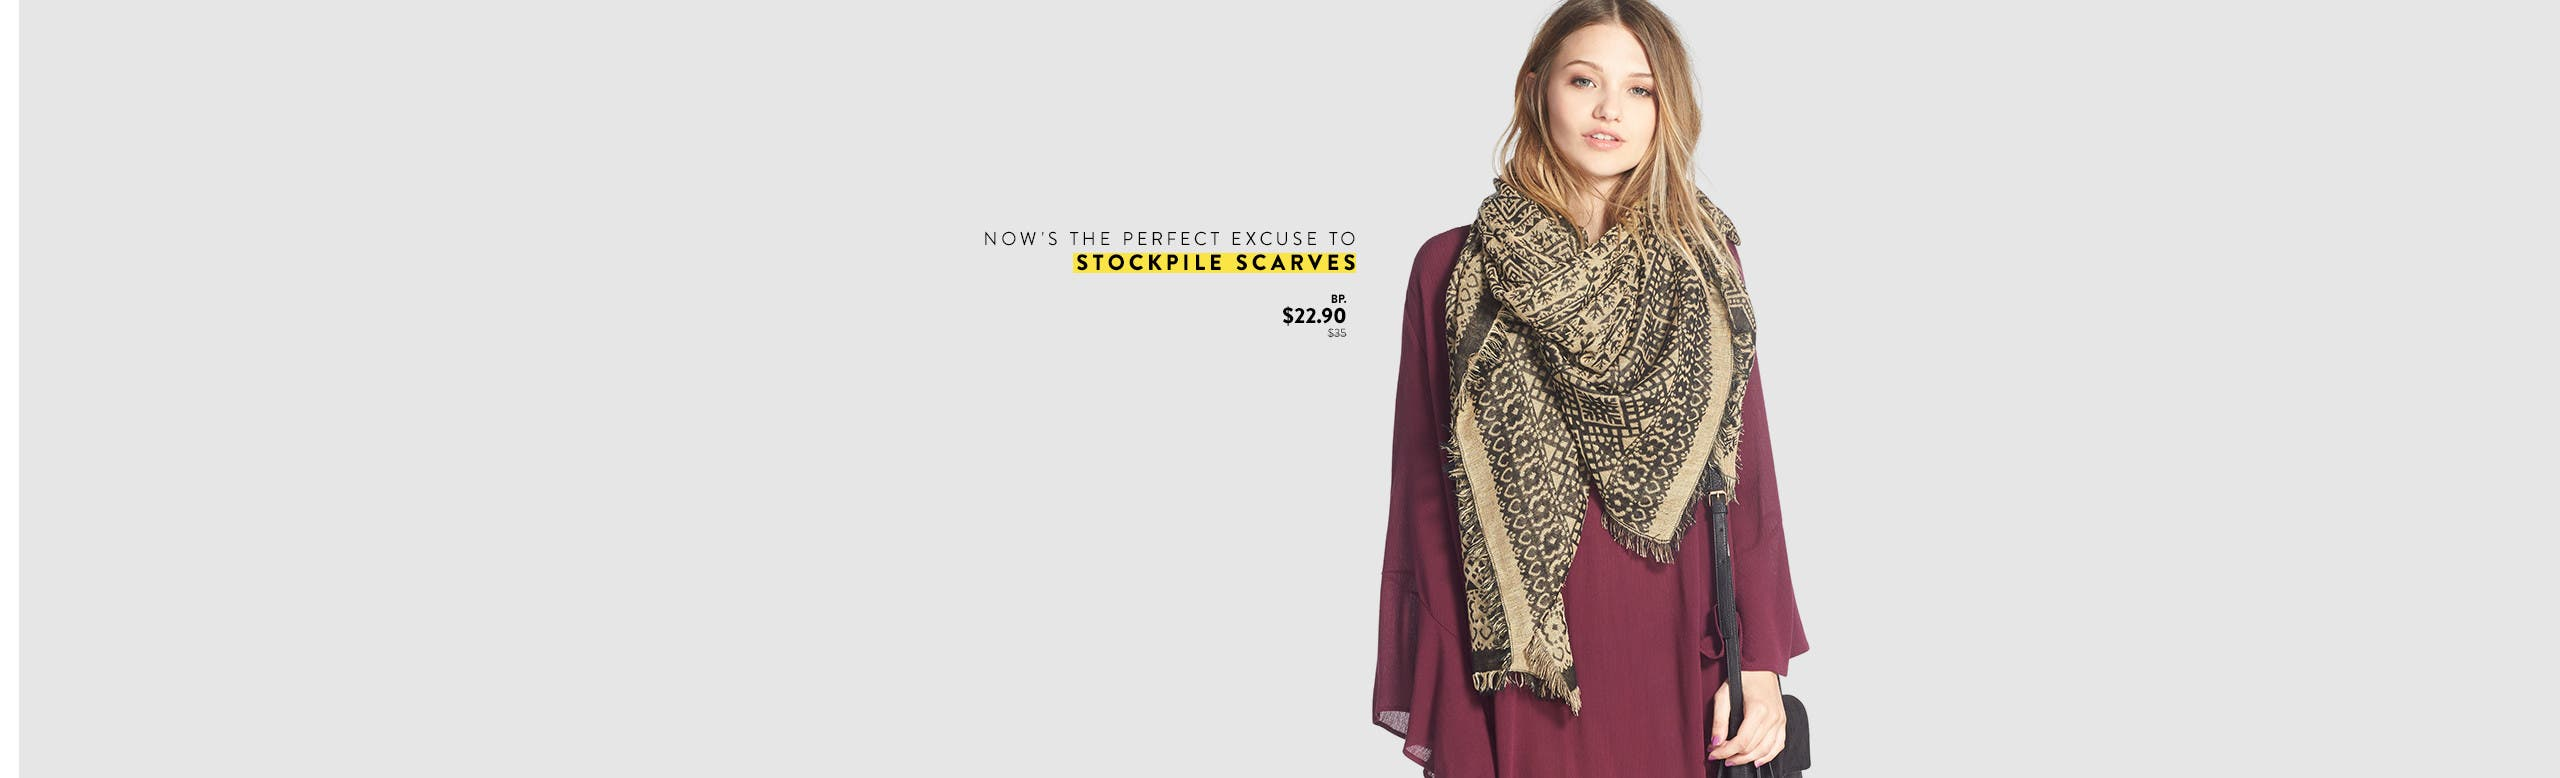 Anniversary Sale: now's the perfect excuse to stockpile scarves and bags.